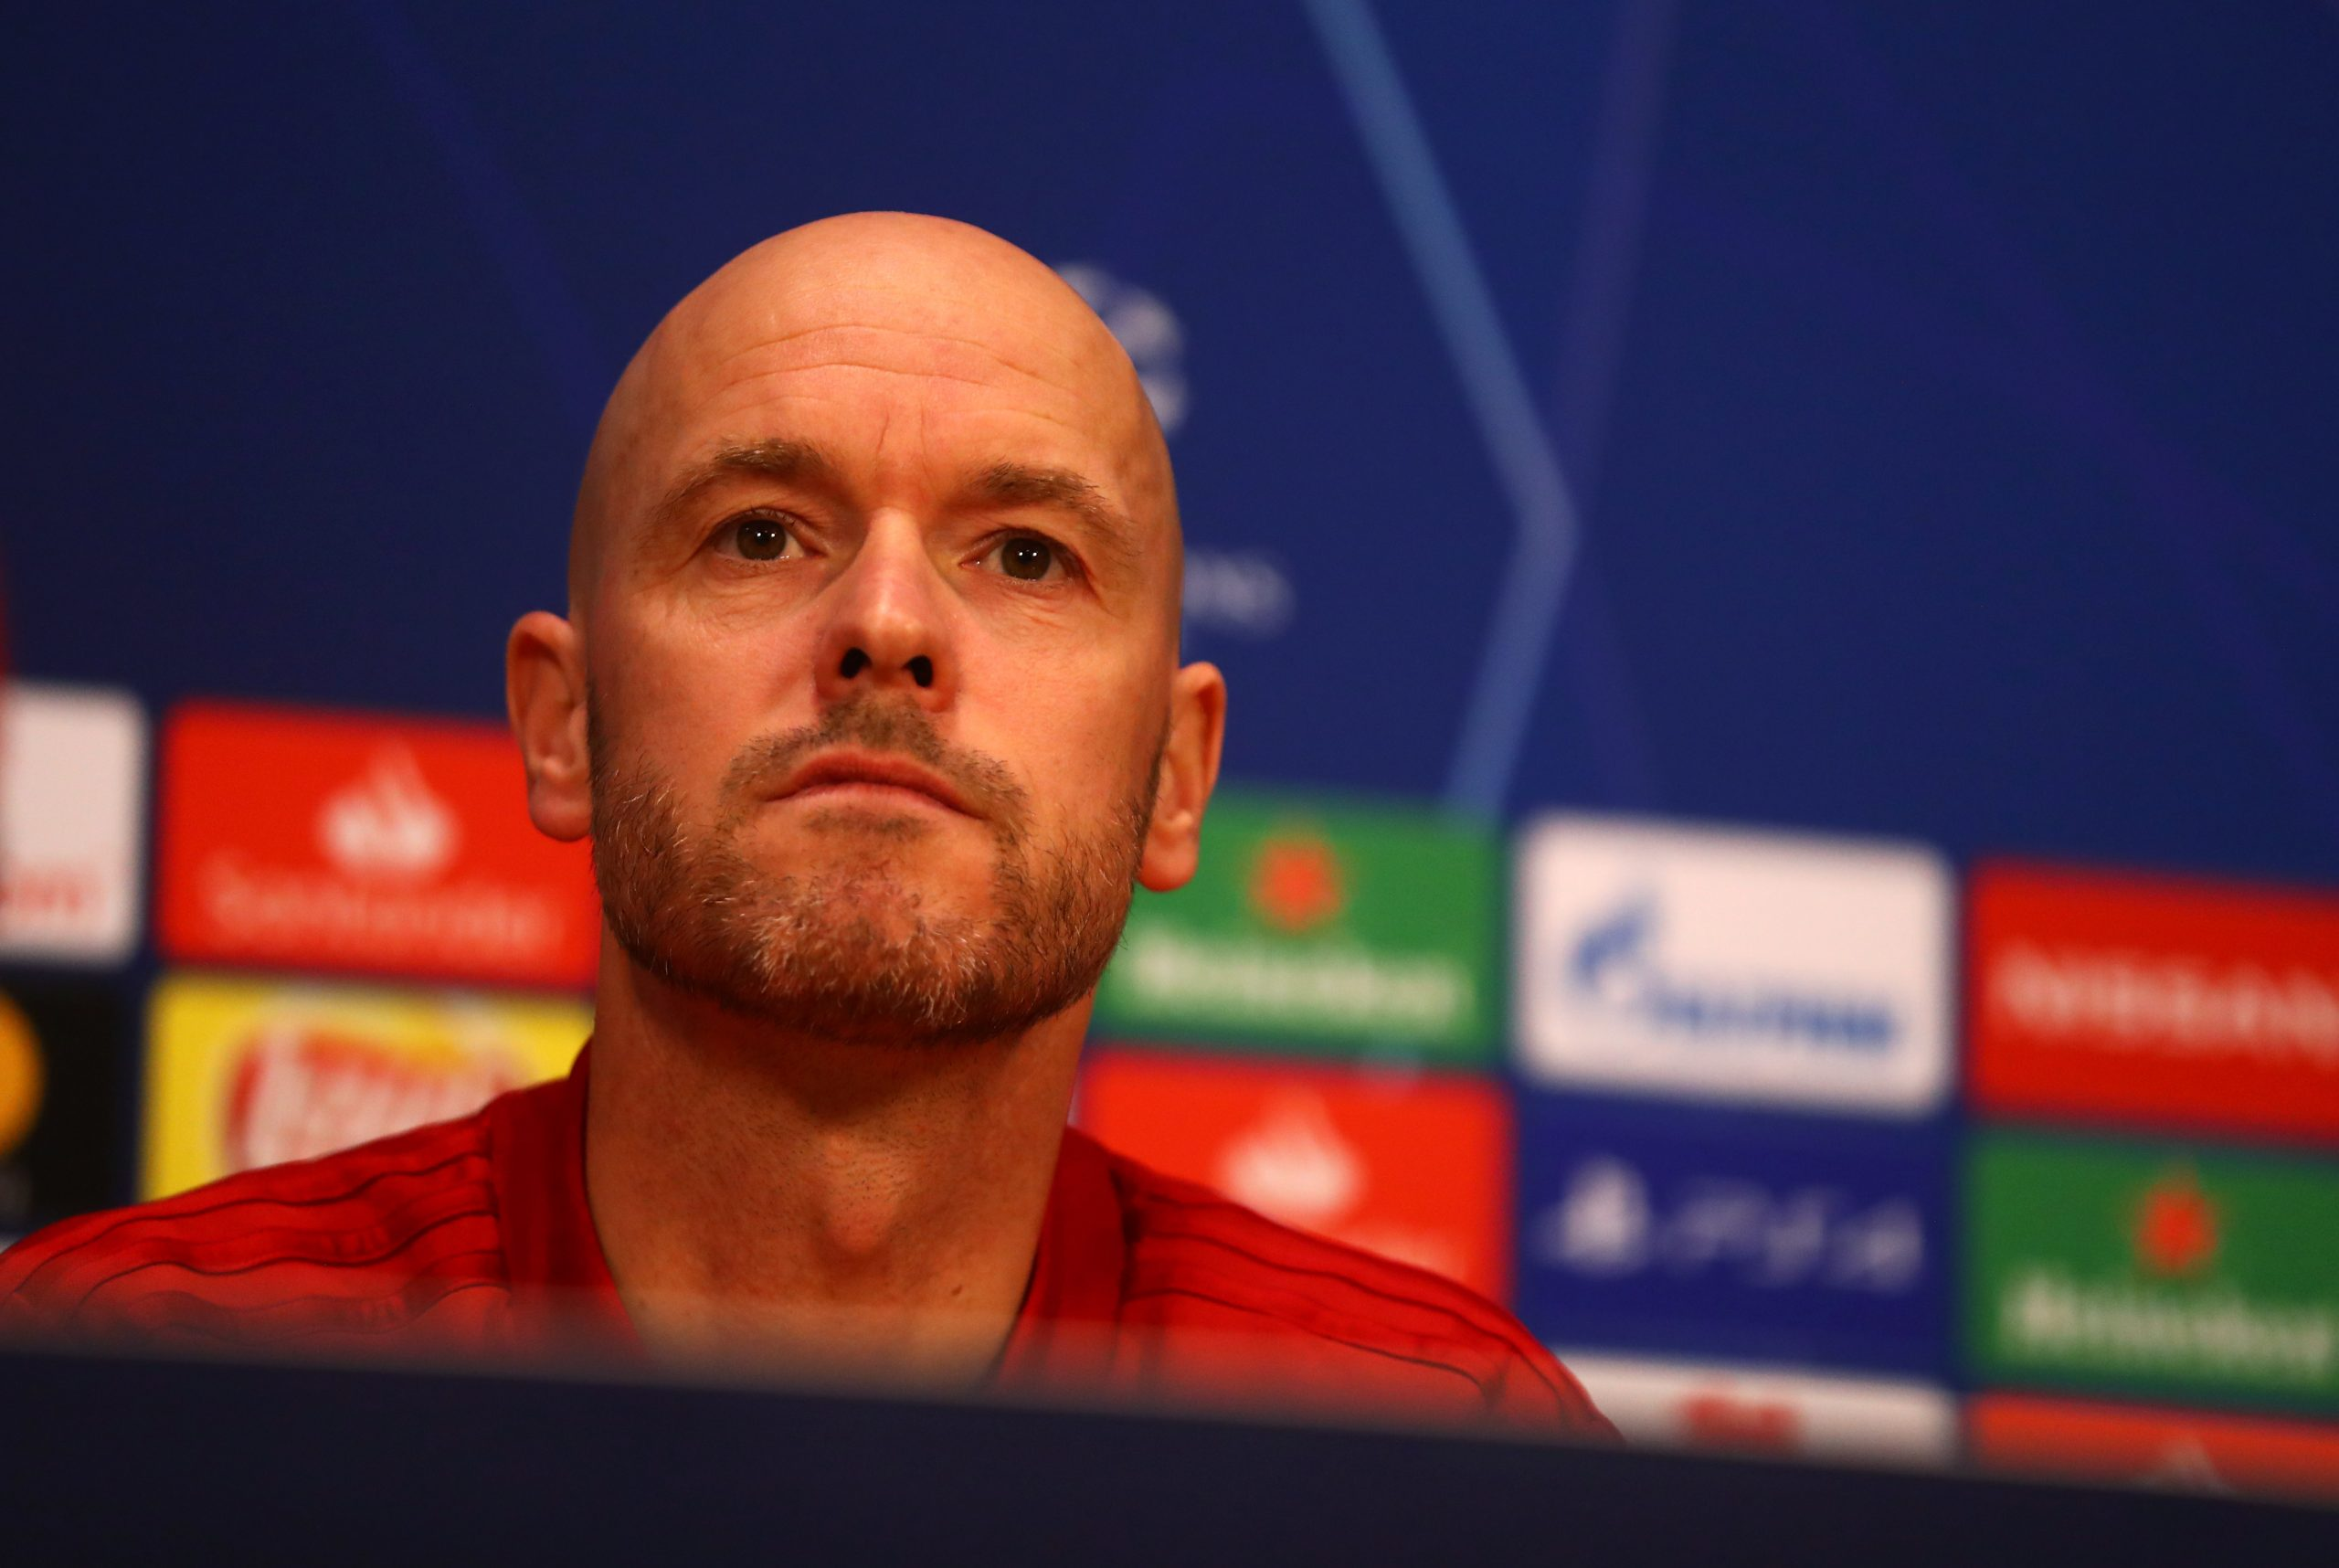 AMSTERDAM, NETHERLANDS – MAY 07:  Erik Ten Hag, Manager of Ajax looks on during an Ajax press conference on the eve of their UEFA Champions League semi final against Tottenham Hotspur at Johan Cruyff Arena on May 07, 2019 in Amsterdam, Netherlands. (Photo by Dean Mouhtaropoulos/Getty Images)